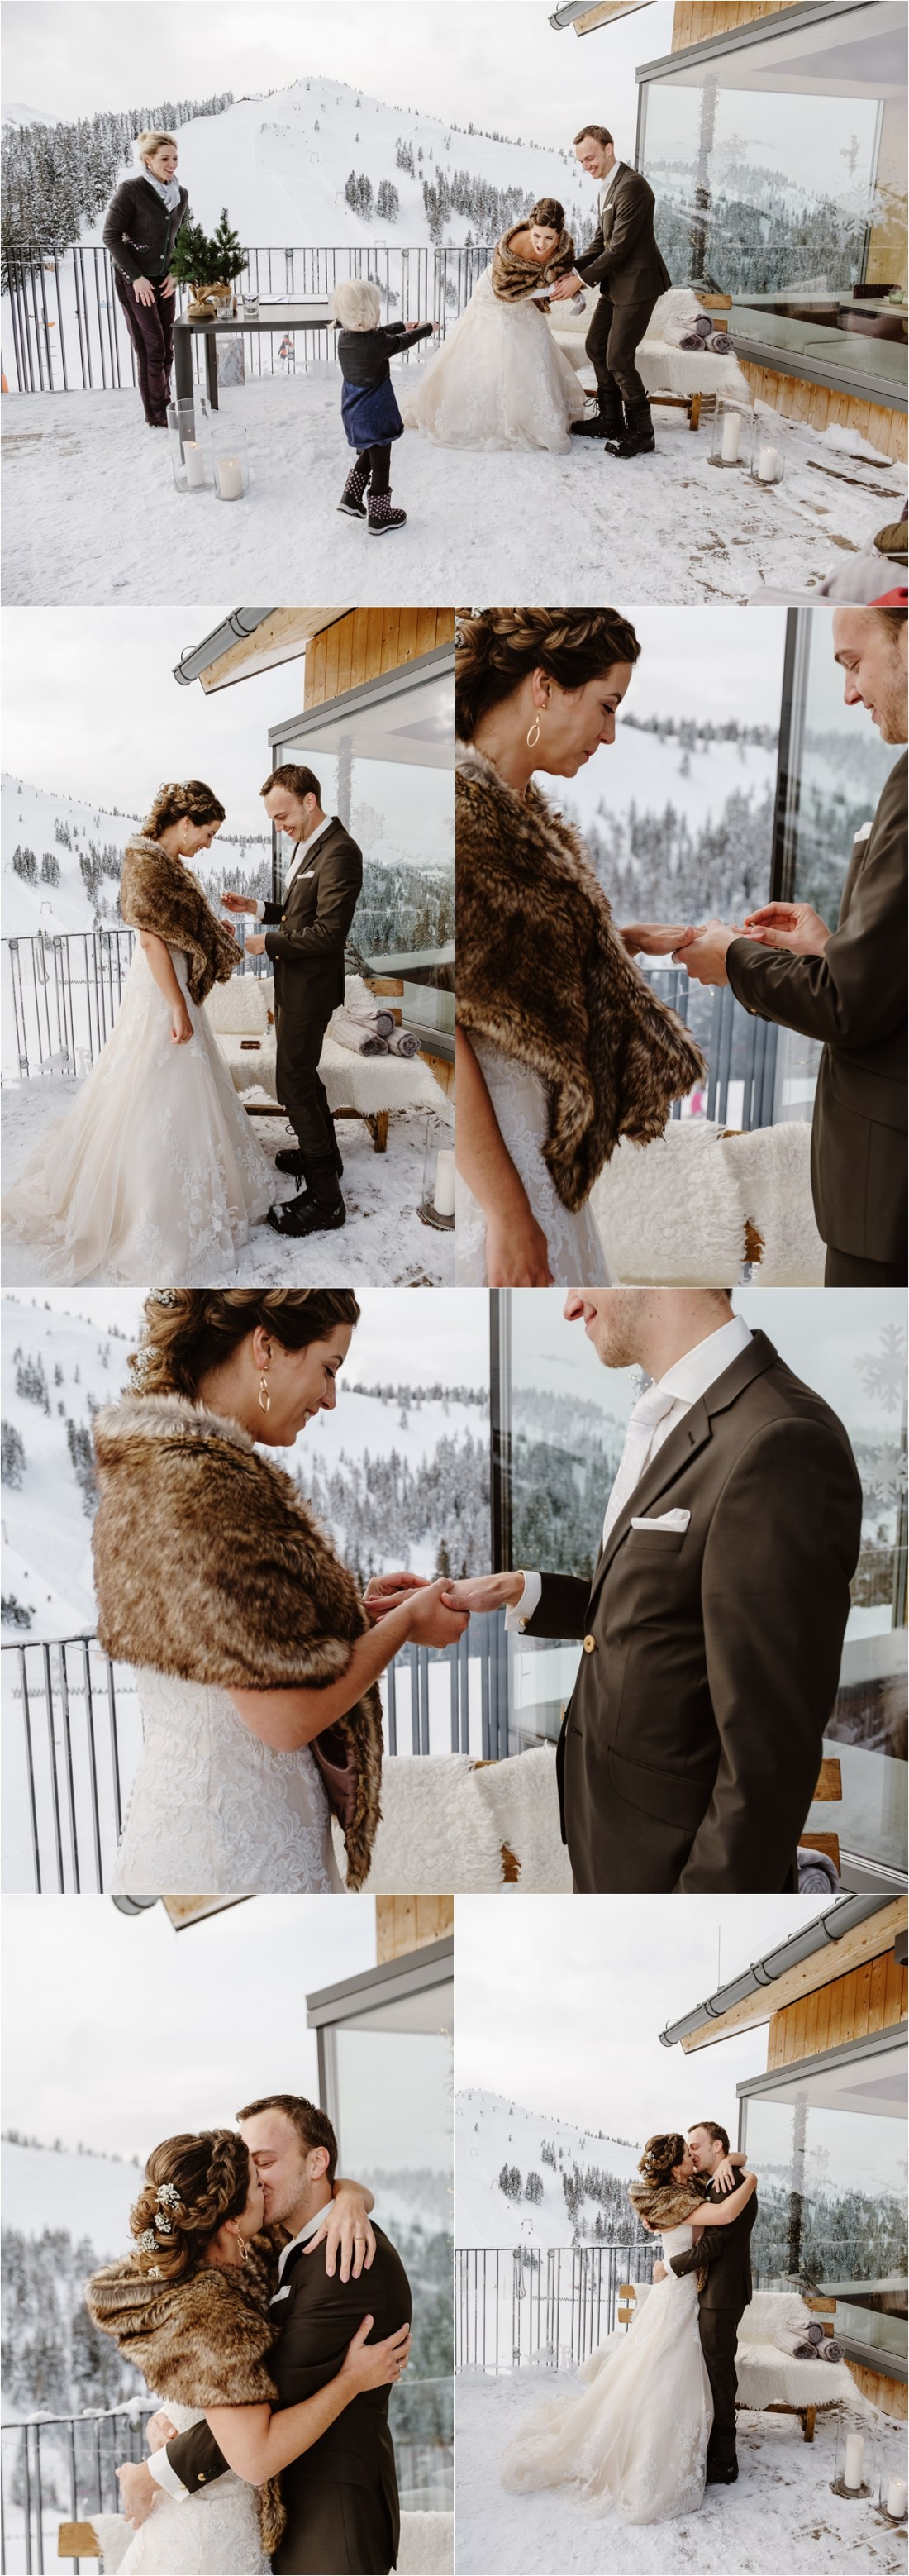 The couple exchange their wooden wedding rings at their mountain ceremony in Austria by Wild Connections Photography